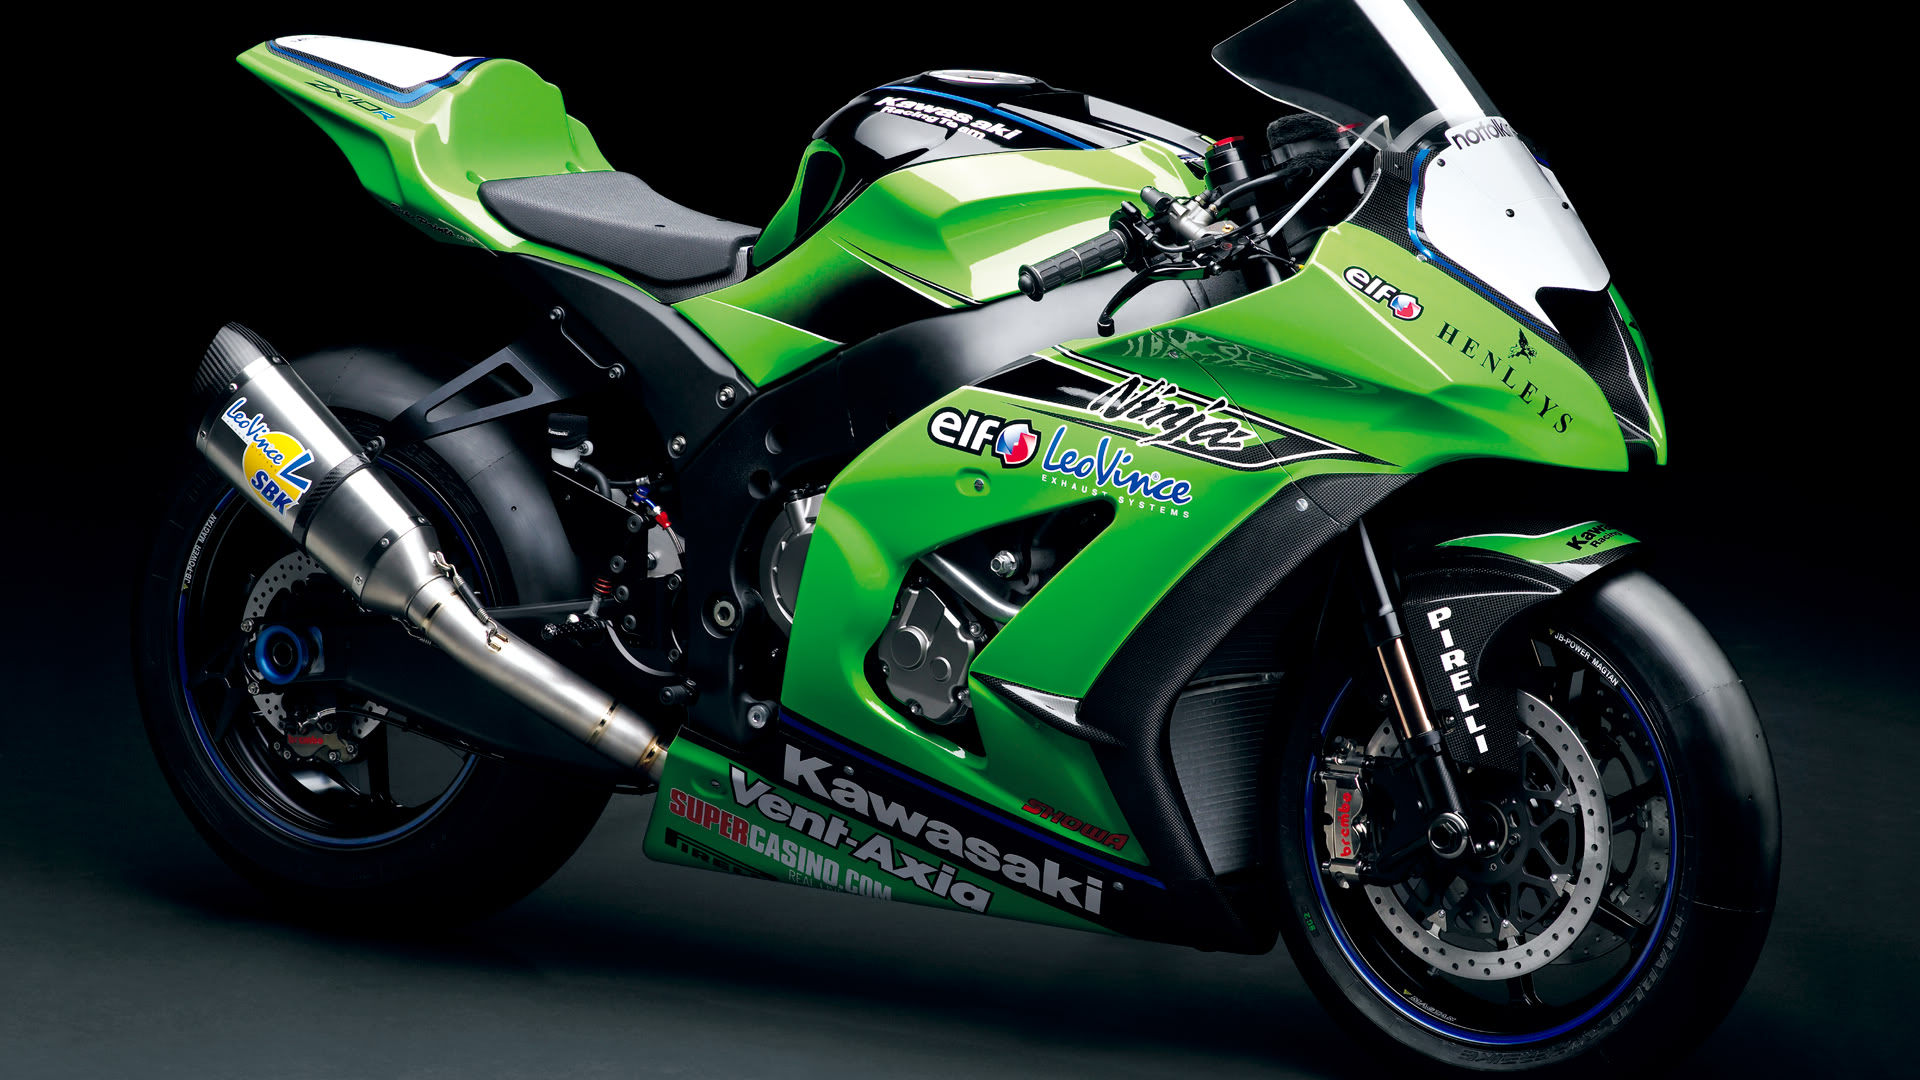 Kawasaki Vent Zx10R HD Wallpaper